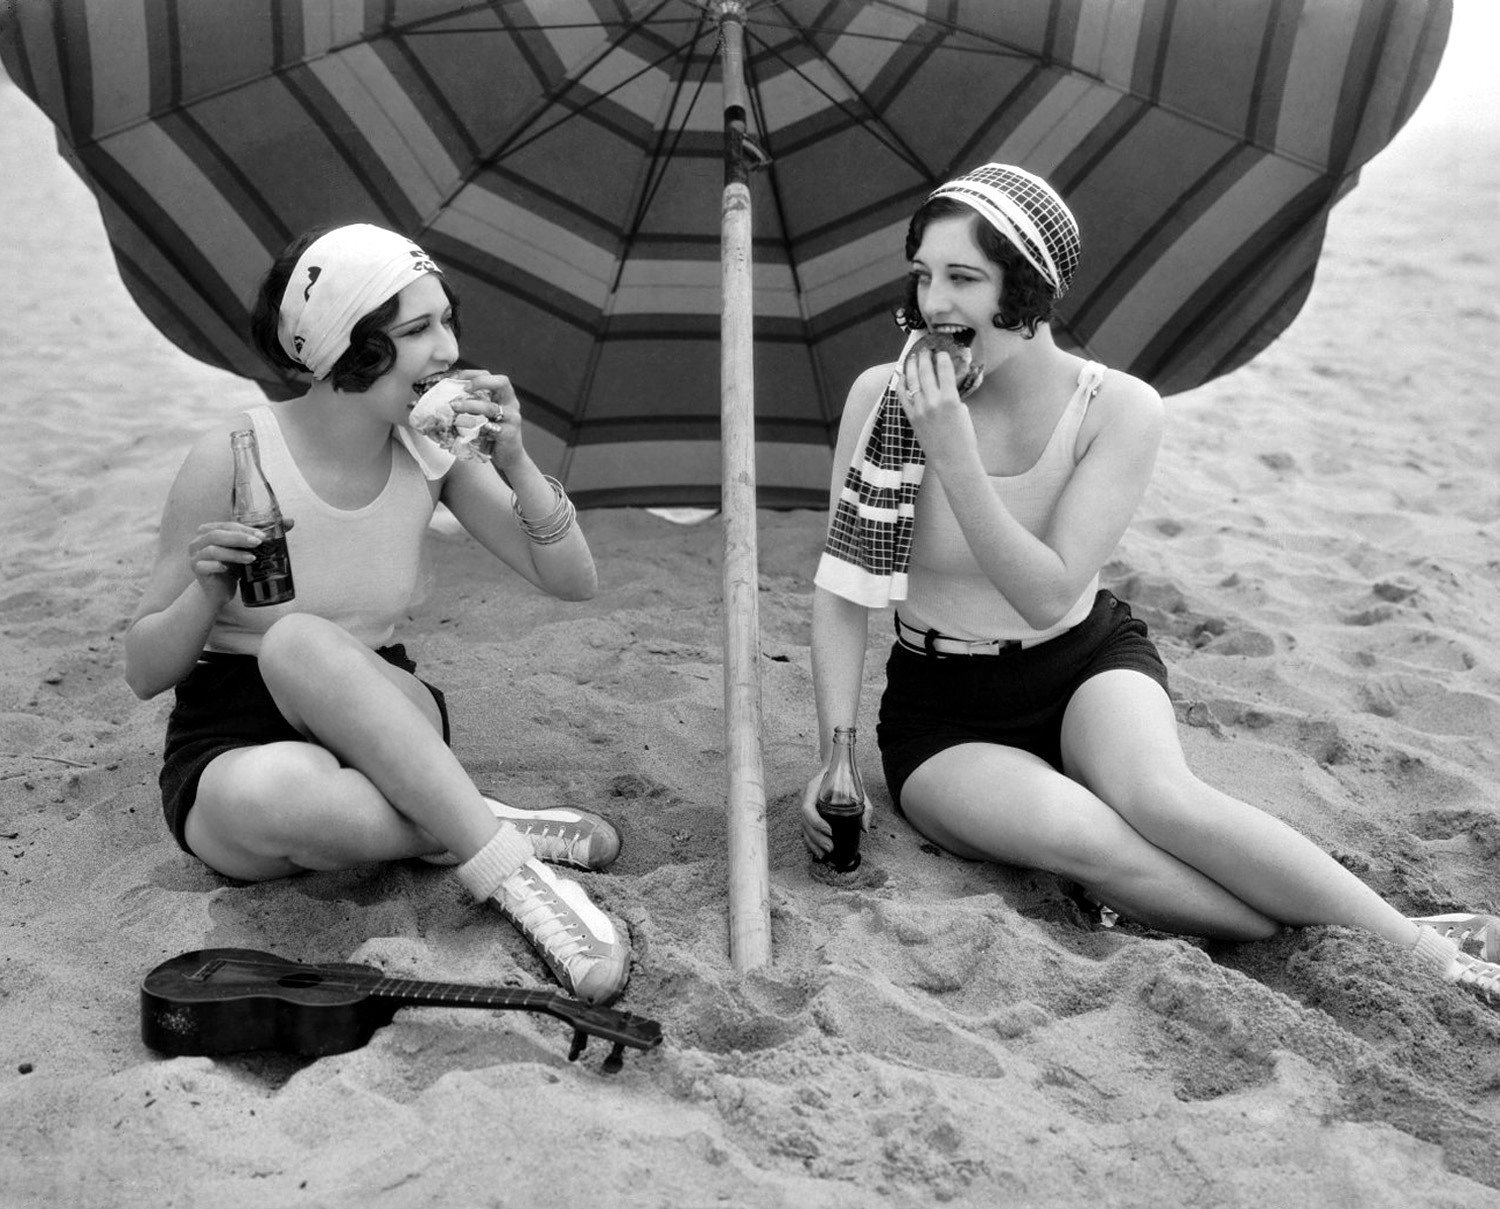 24th March 1927: American actress Joan Crawford (1904 - 1977) enjoys a picnic on the beach with fellow actress Dorothy Sebastian, left (1906 - 1957).